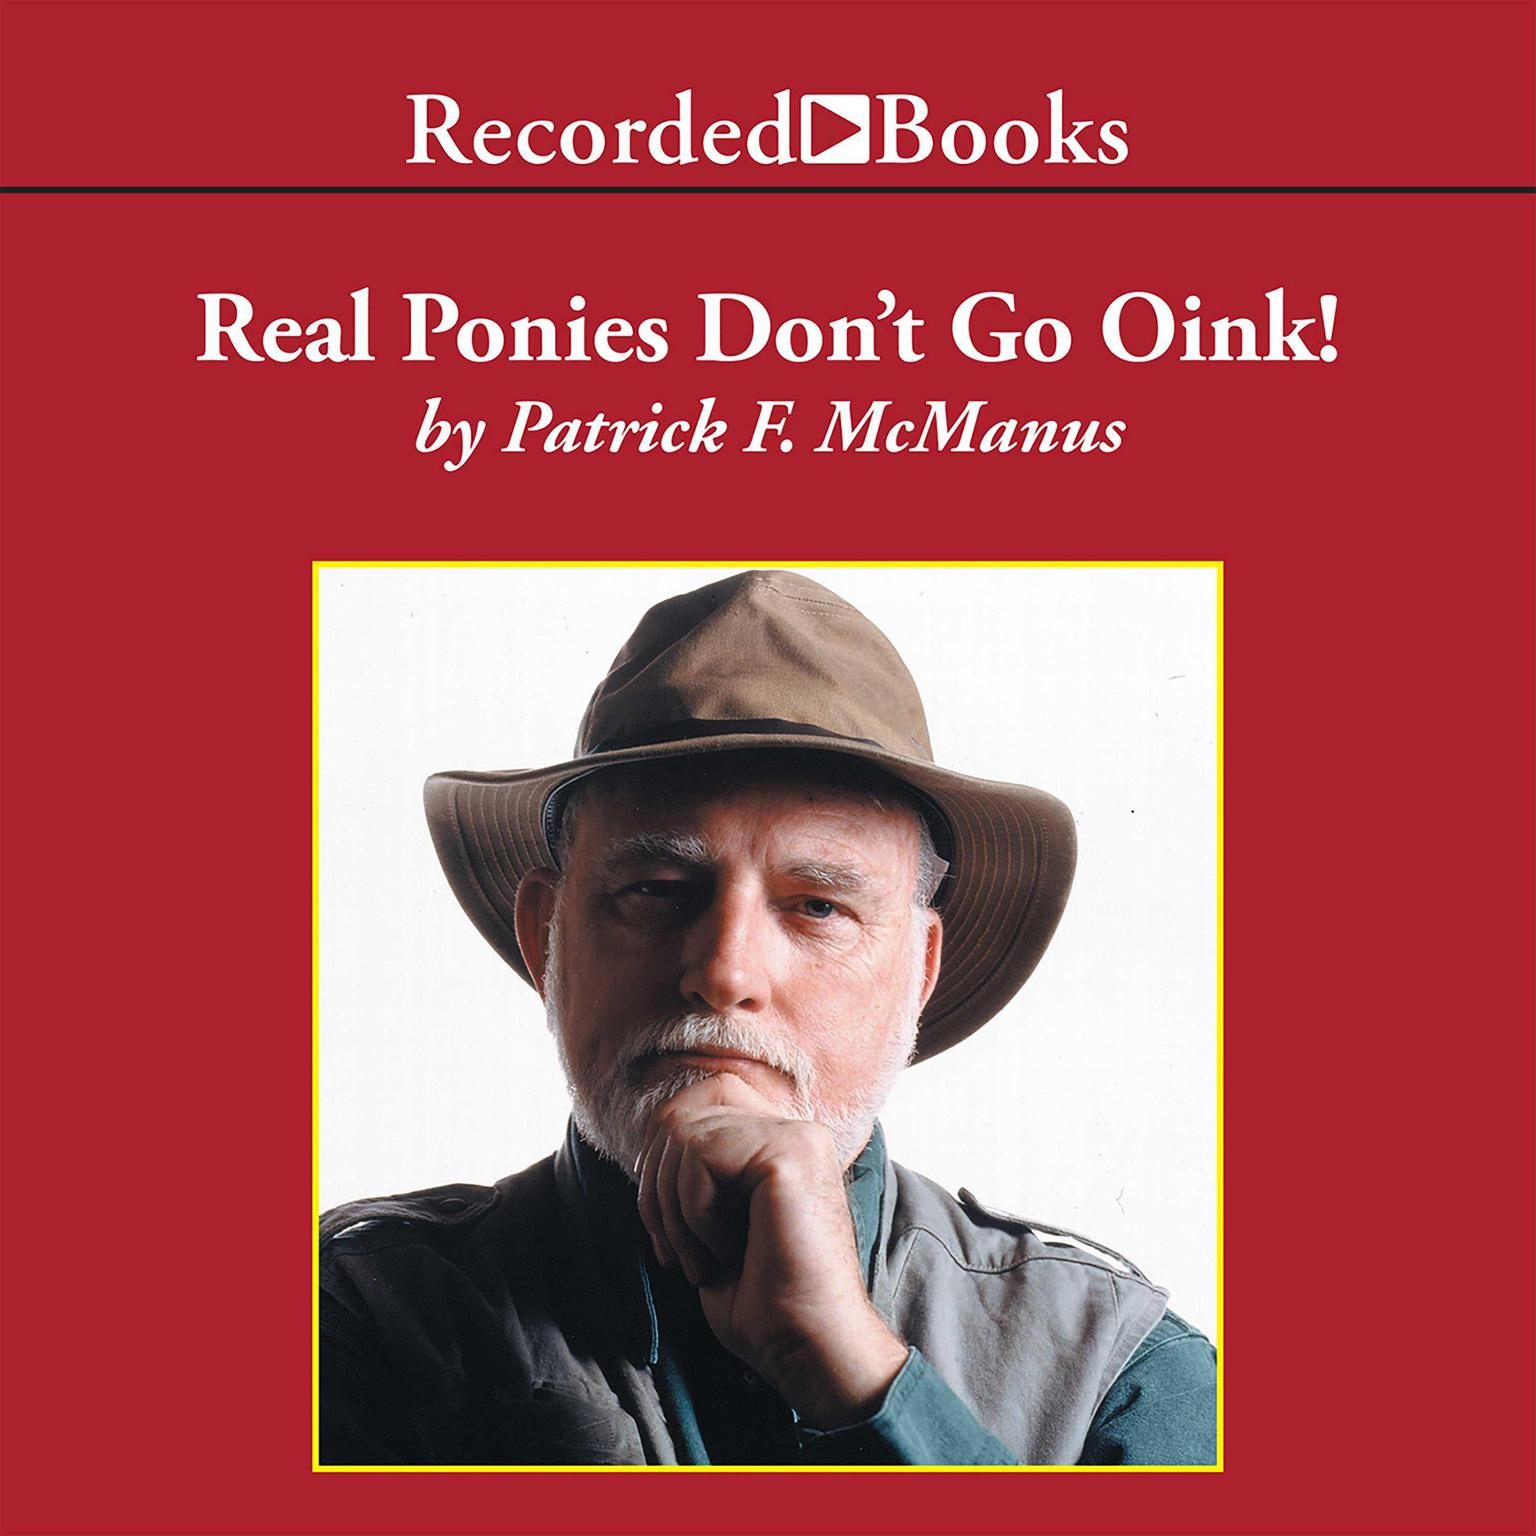 Real Ponies Dont Go Oink Audiobook, by Patrick F. McManus